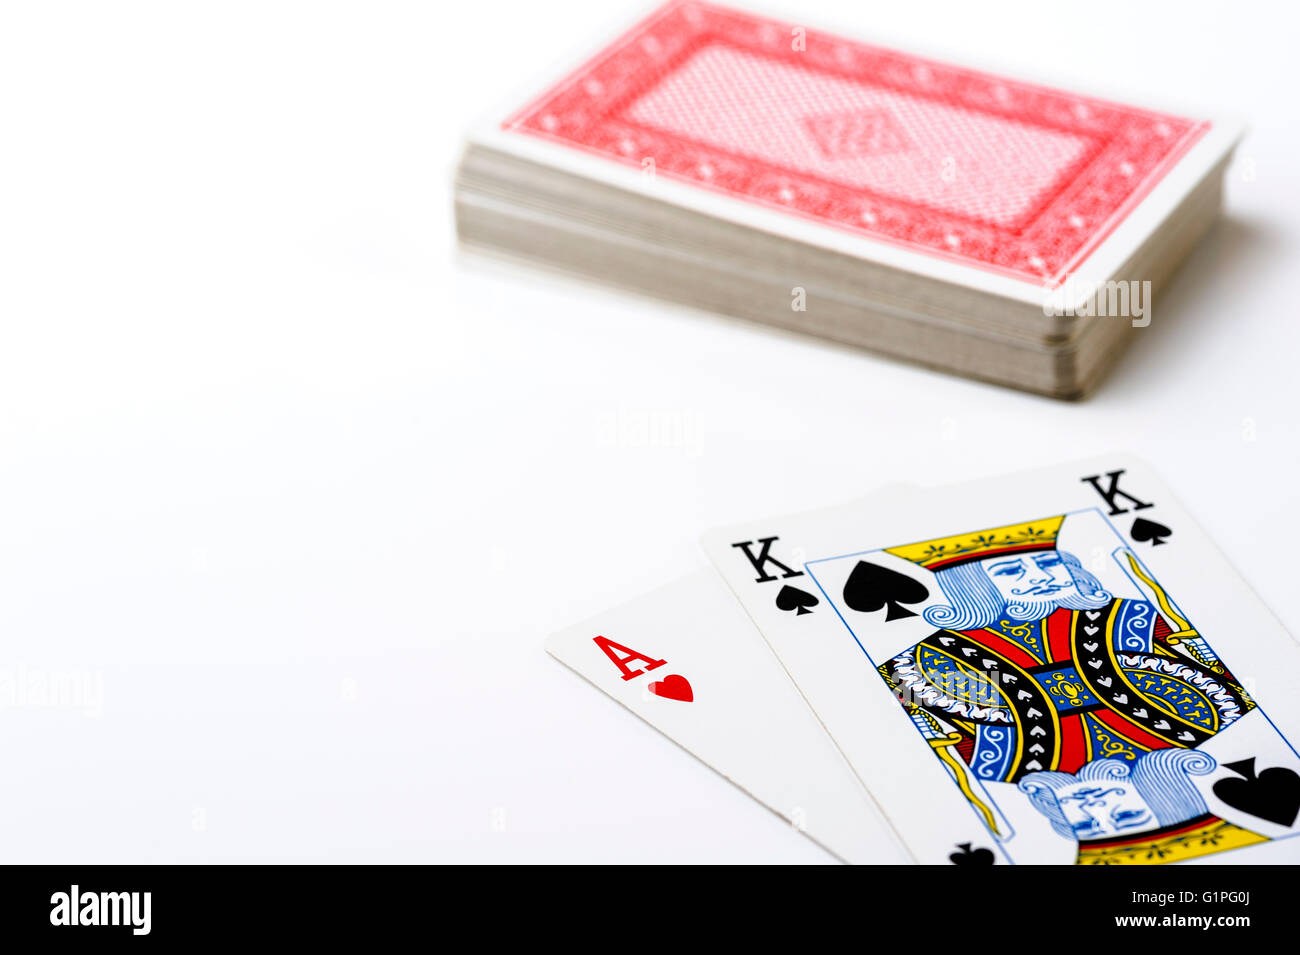 Ace King and stack of playing cards. - Stock Image